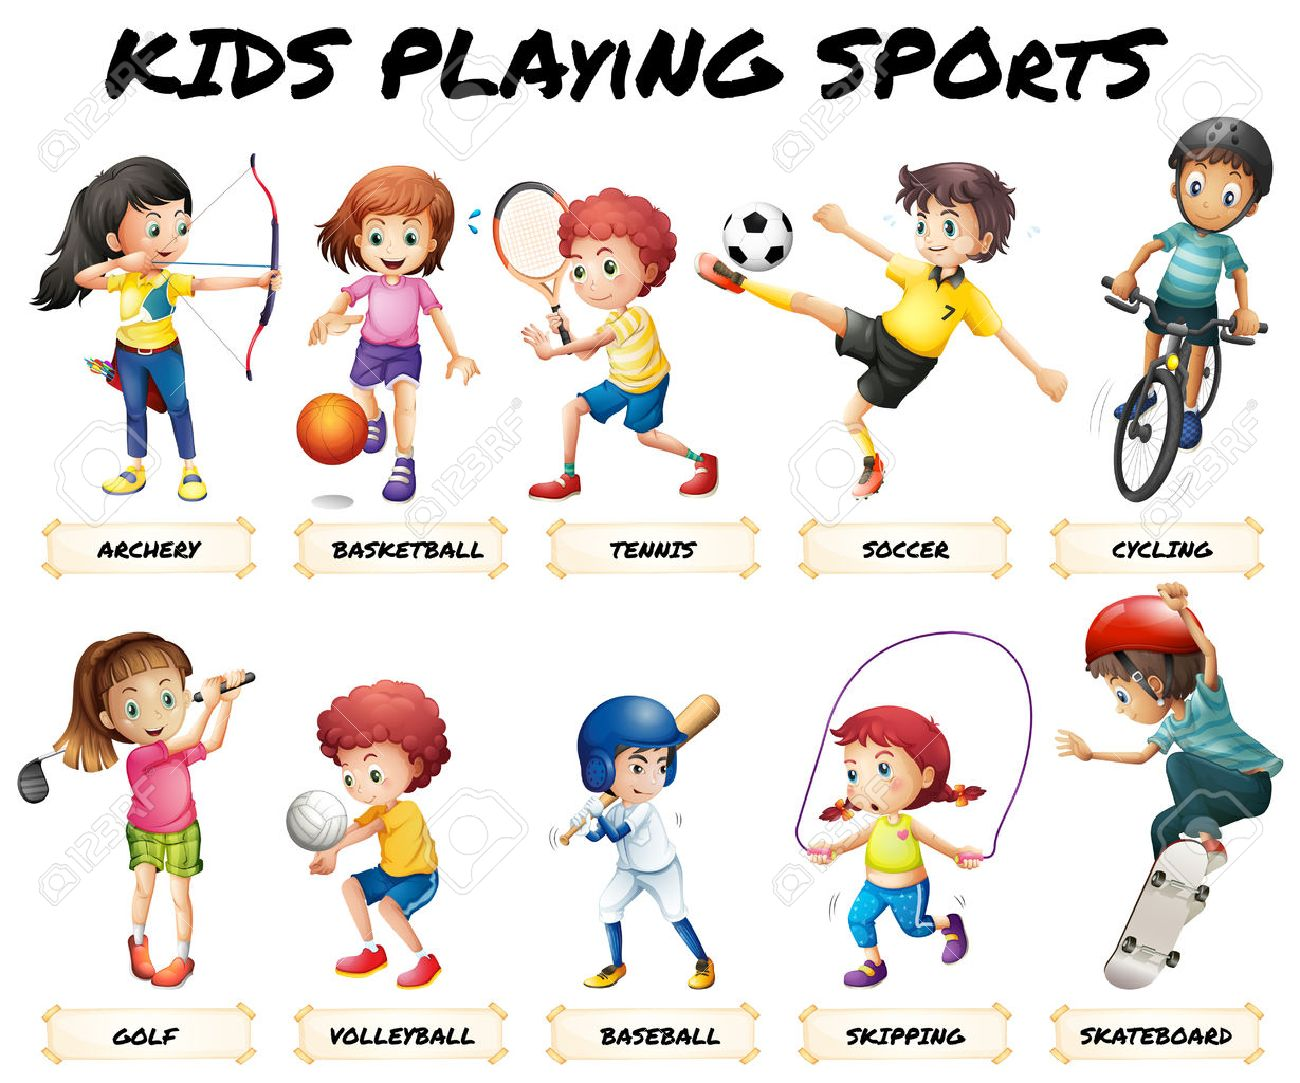 Boys and girls playing sports illustration - 50163223